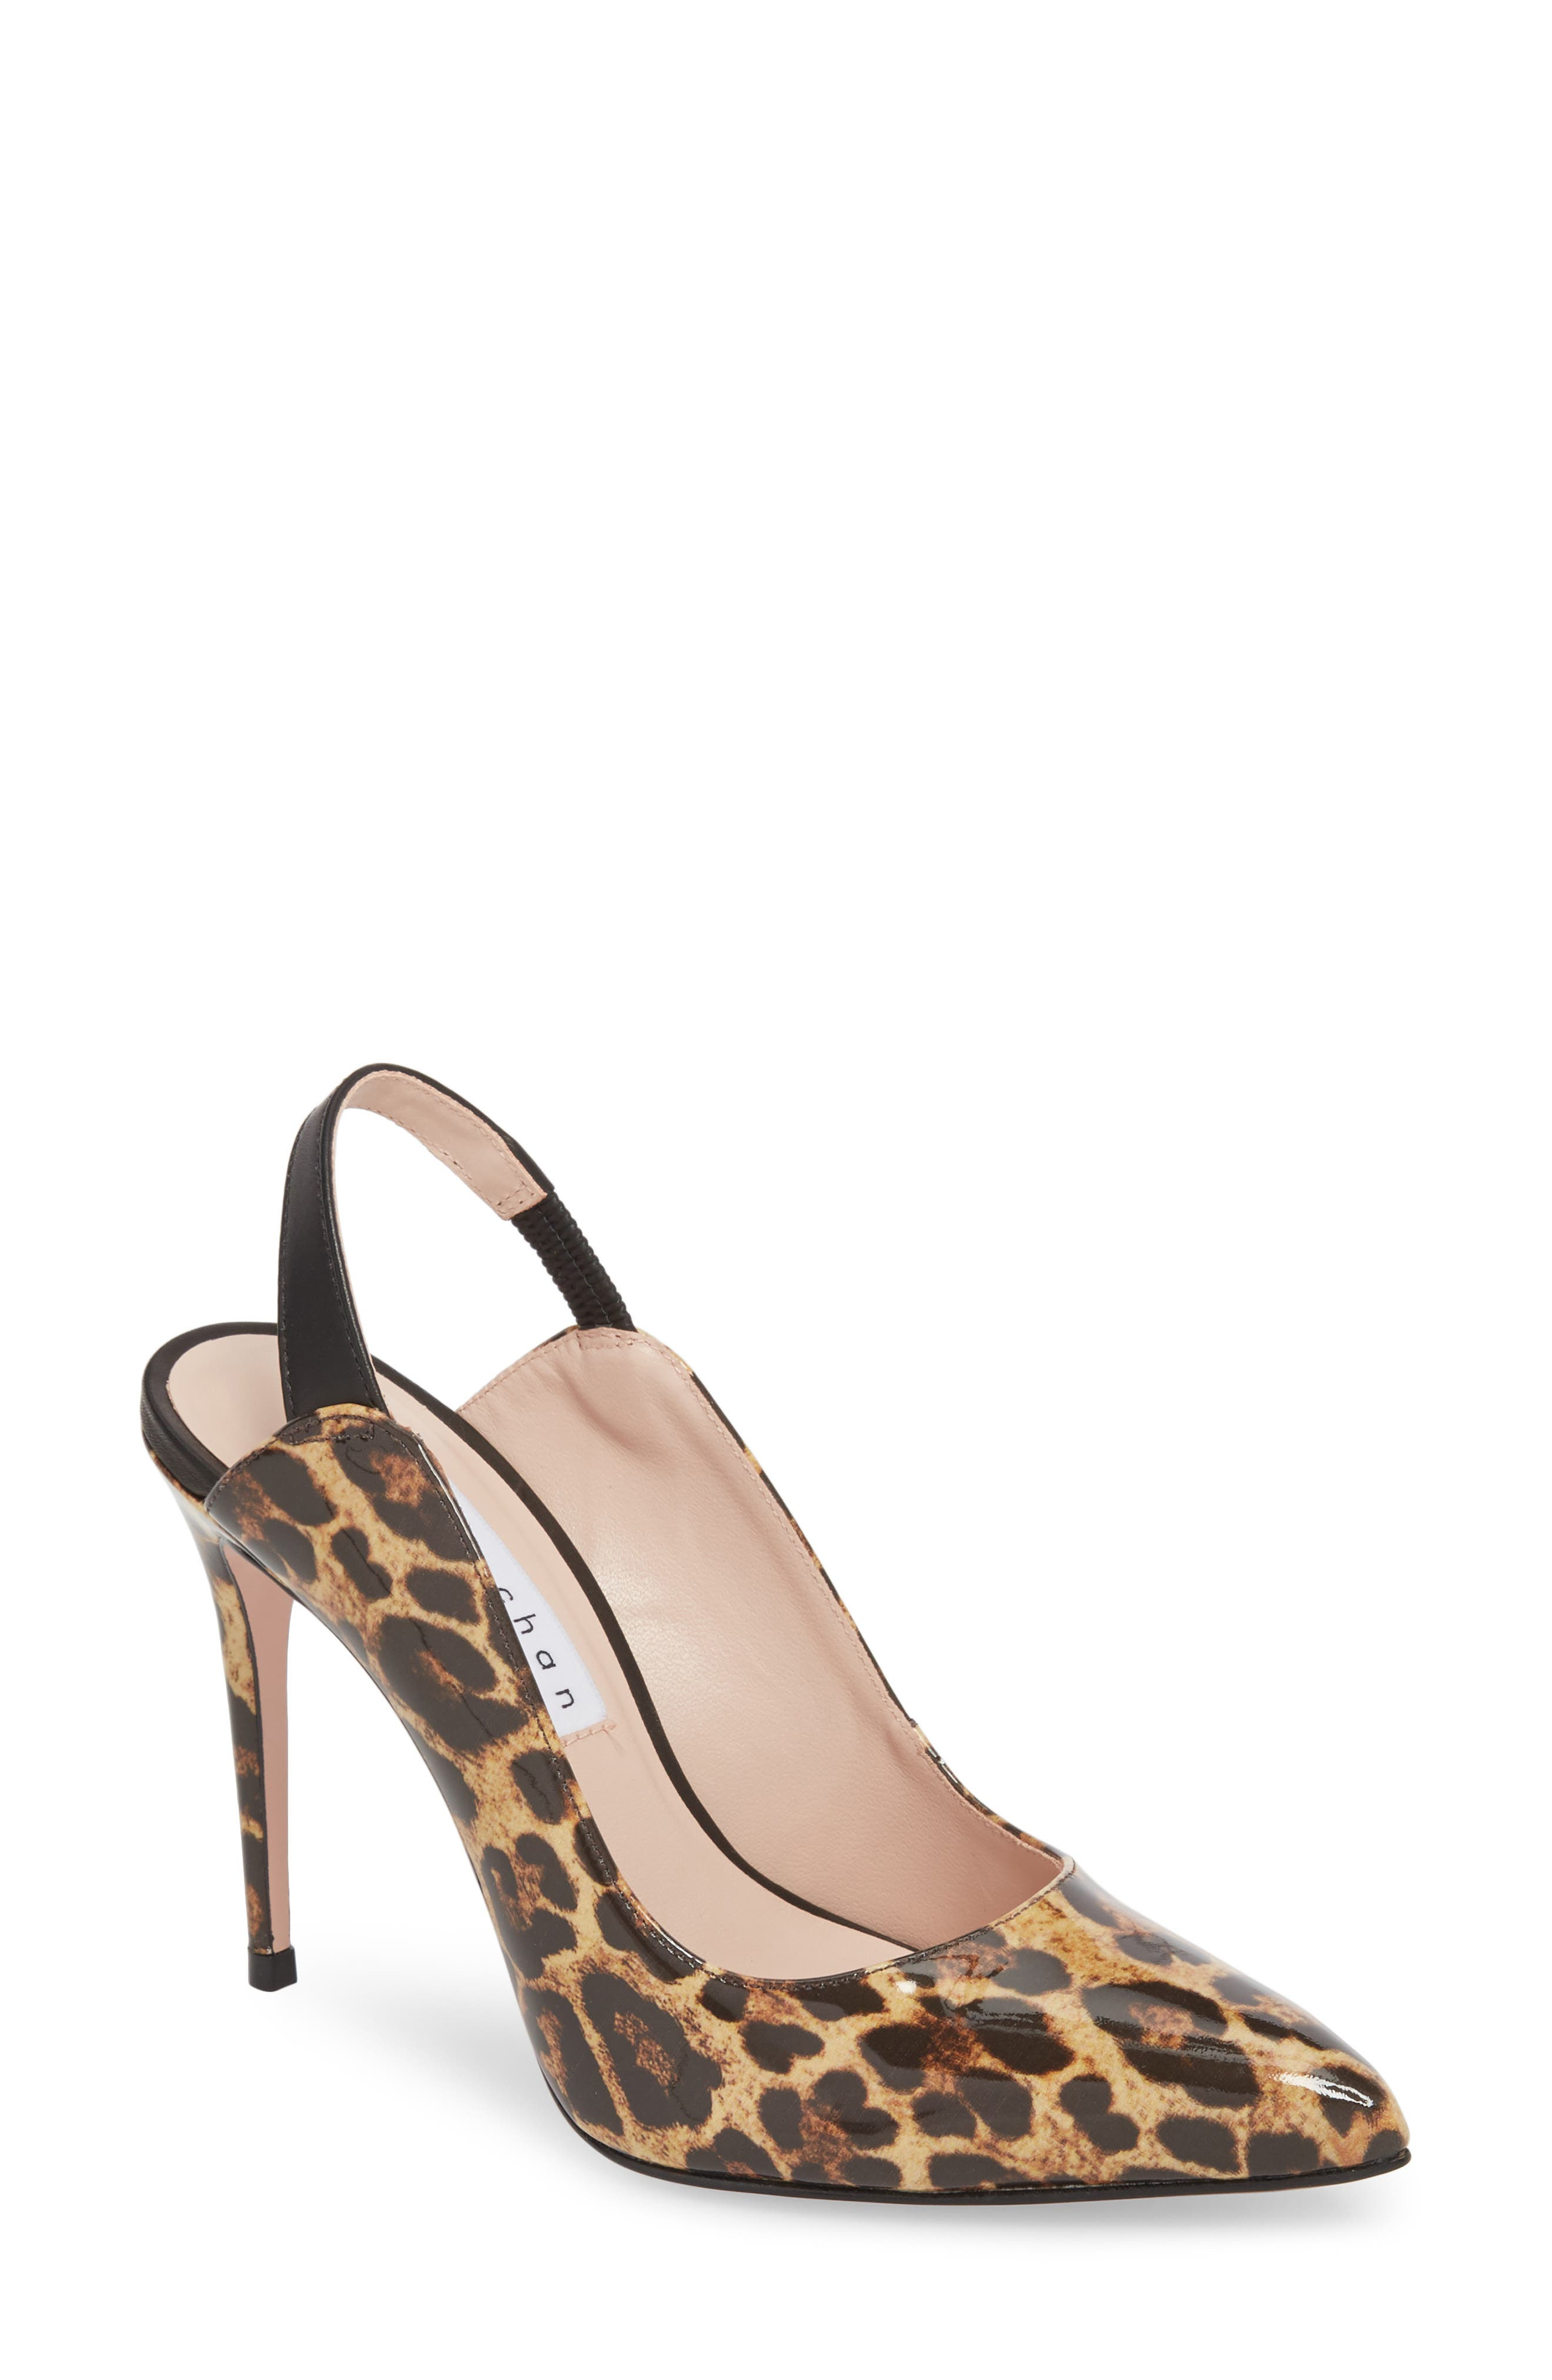 Alice Pointy Toe Pump,                             Main thumbnail 1, color,                             Leopard Leather